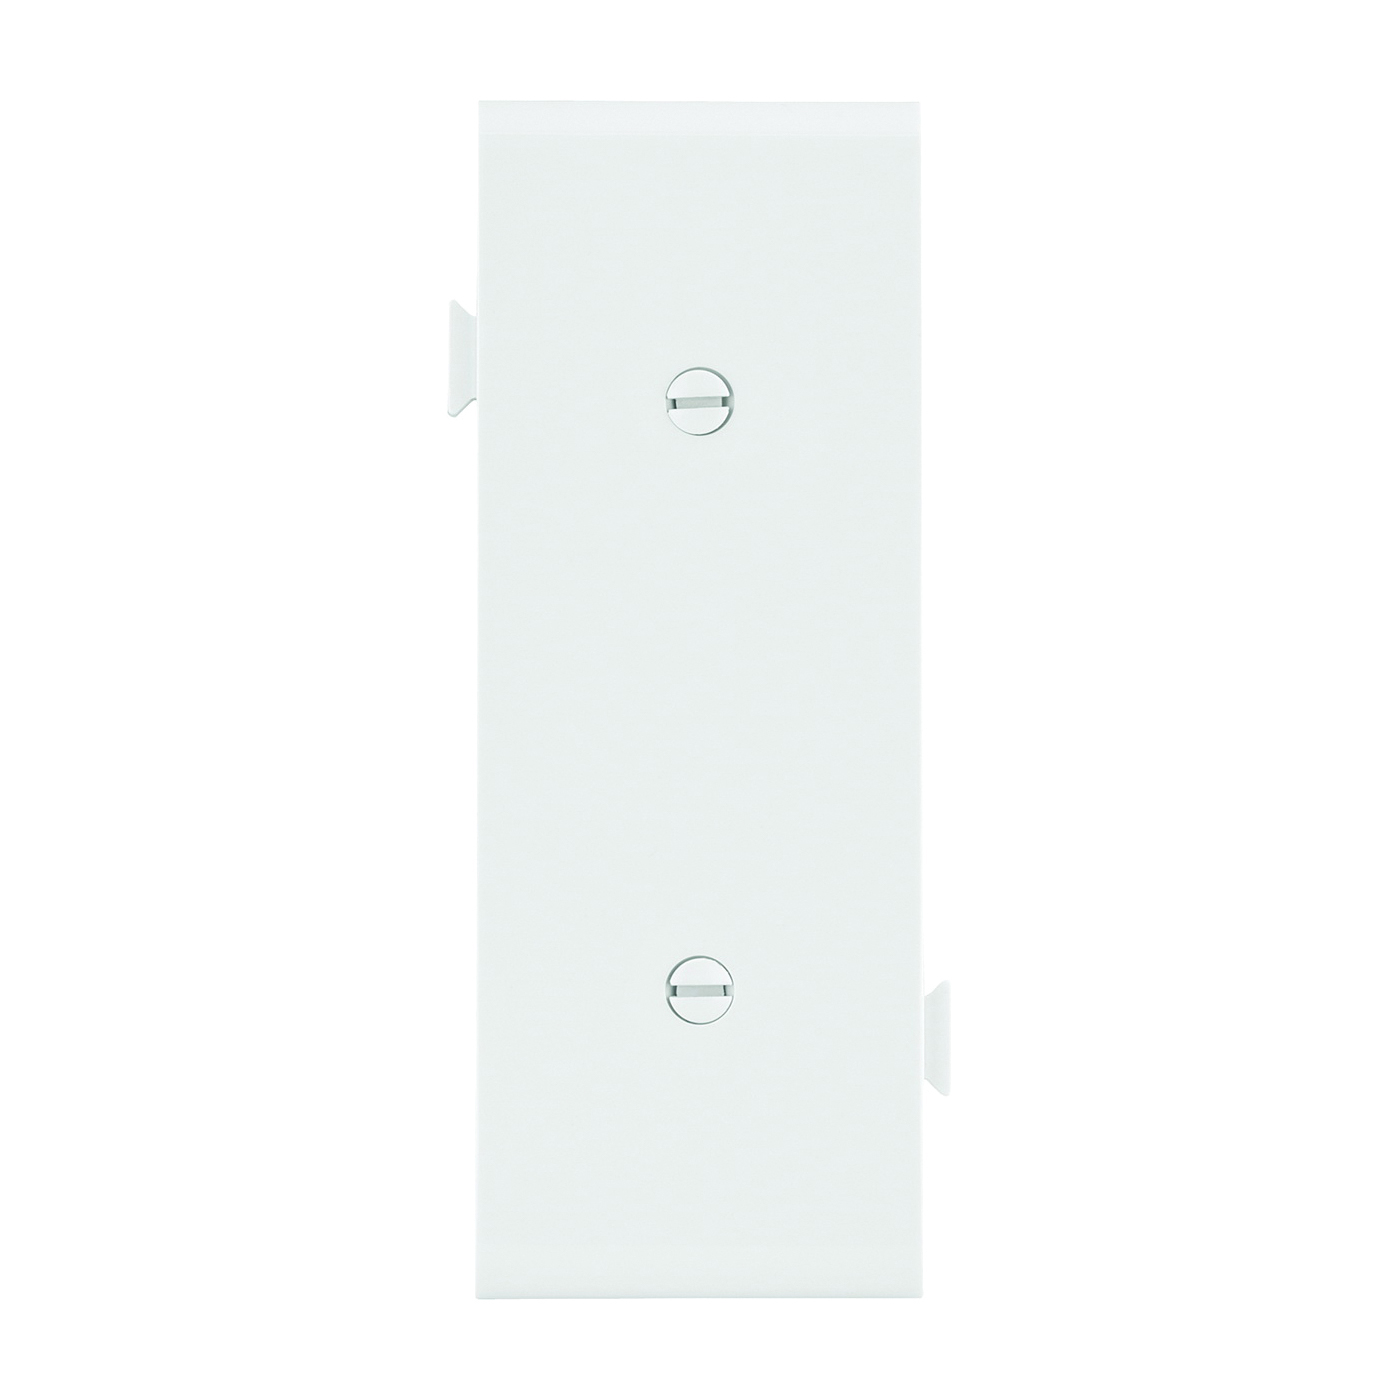 Picture of Eaton Cooper Wiring STC14W Wallplate, 1.9 in L, 4.84 in W, 0.23 in Thick, 1-Gang, Polycarbonate, White